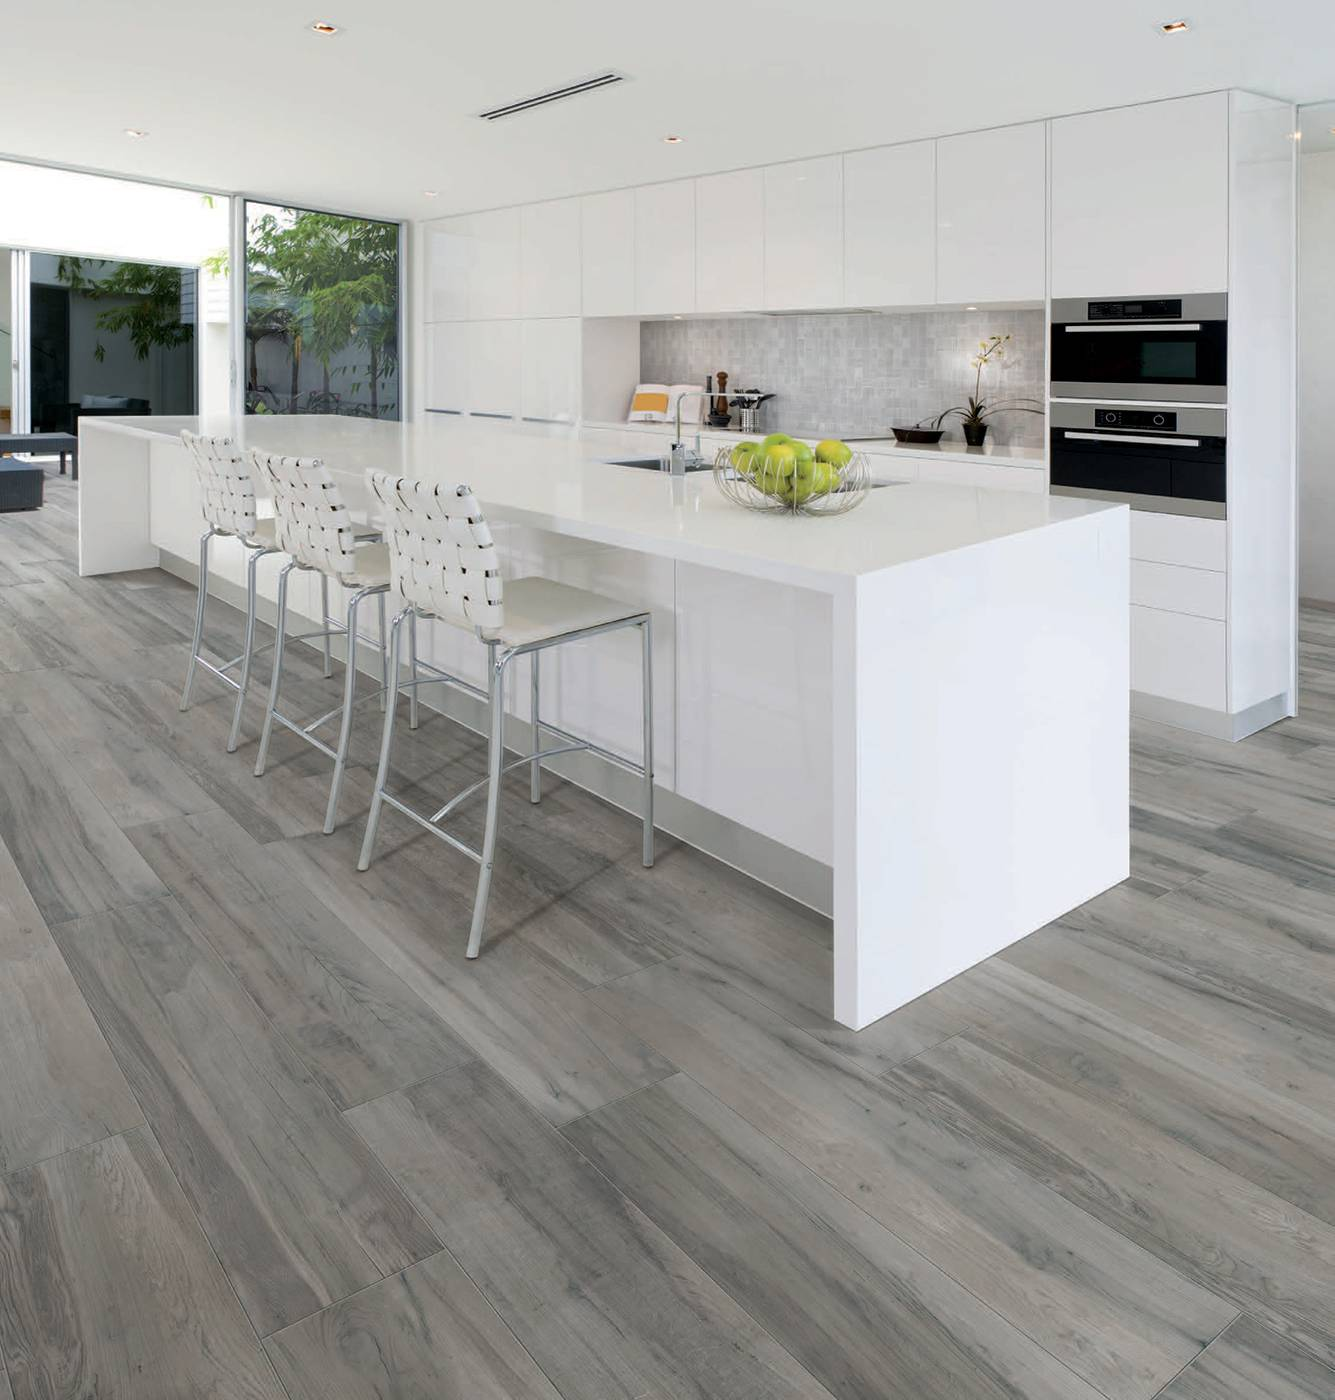 Carrelage cuisine imitation parquet deco salon noir et for Carrelage imitation parquet gris